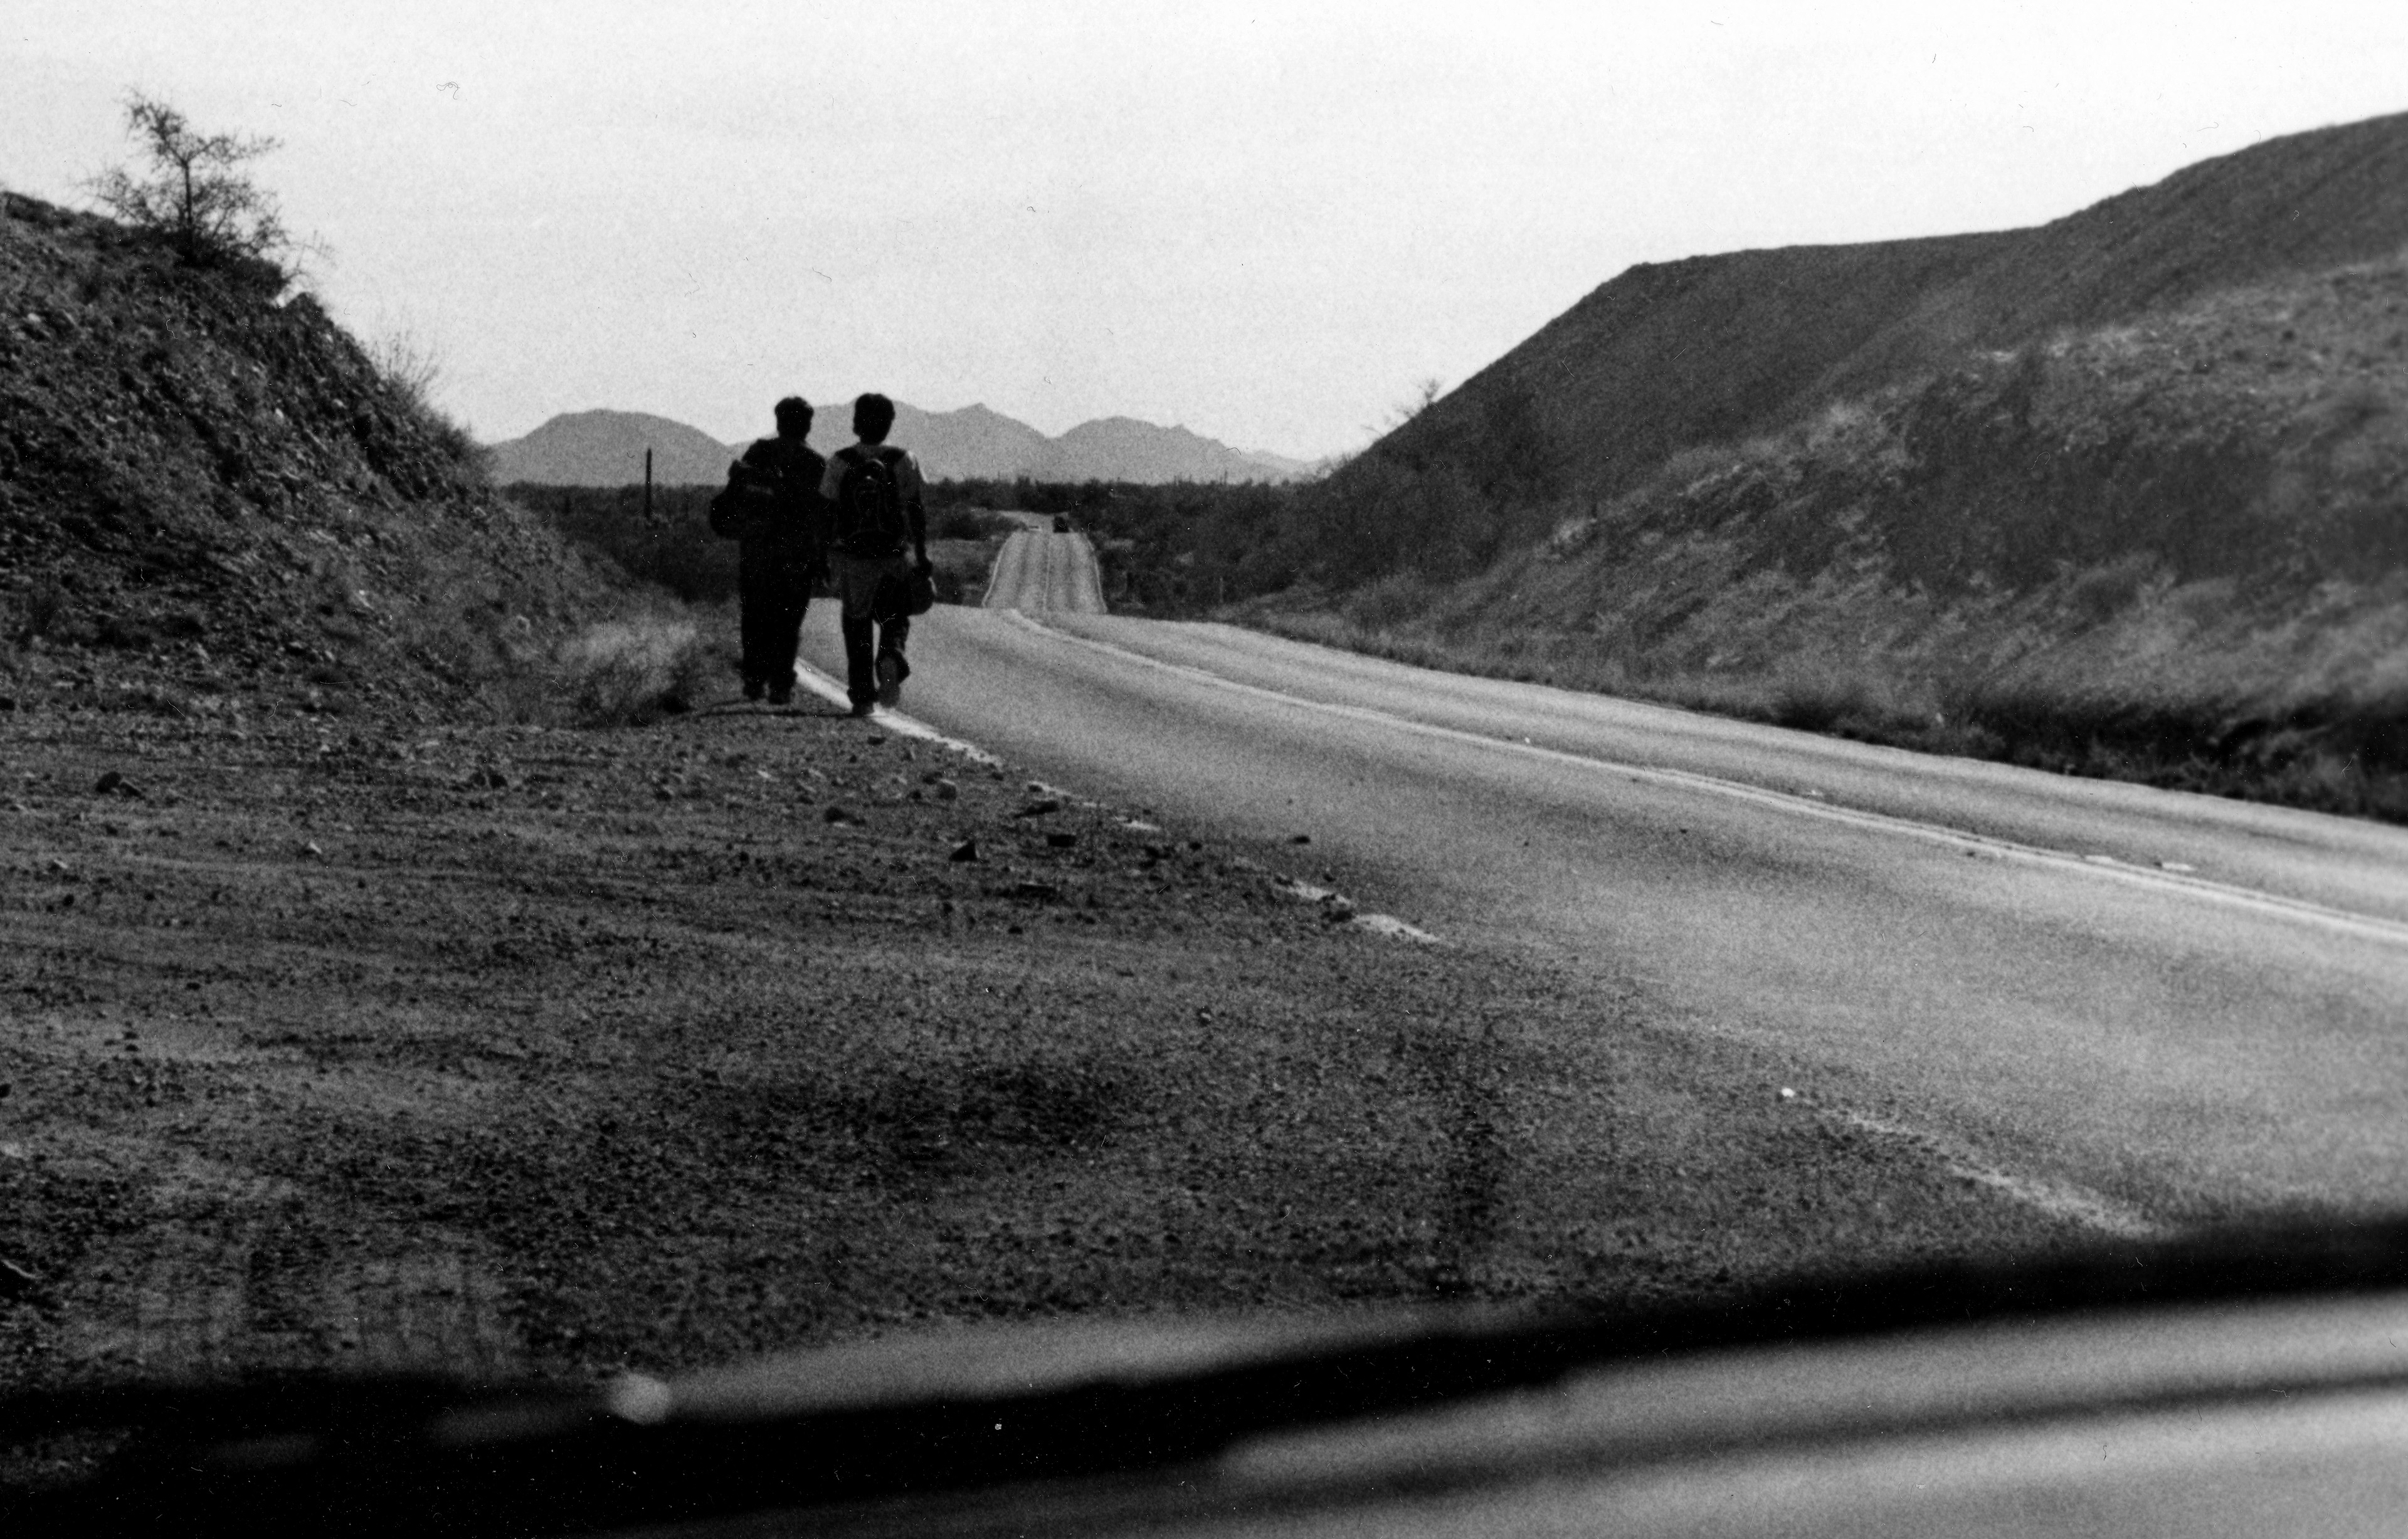 Two dark figures walk by the side of the road in a desert